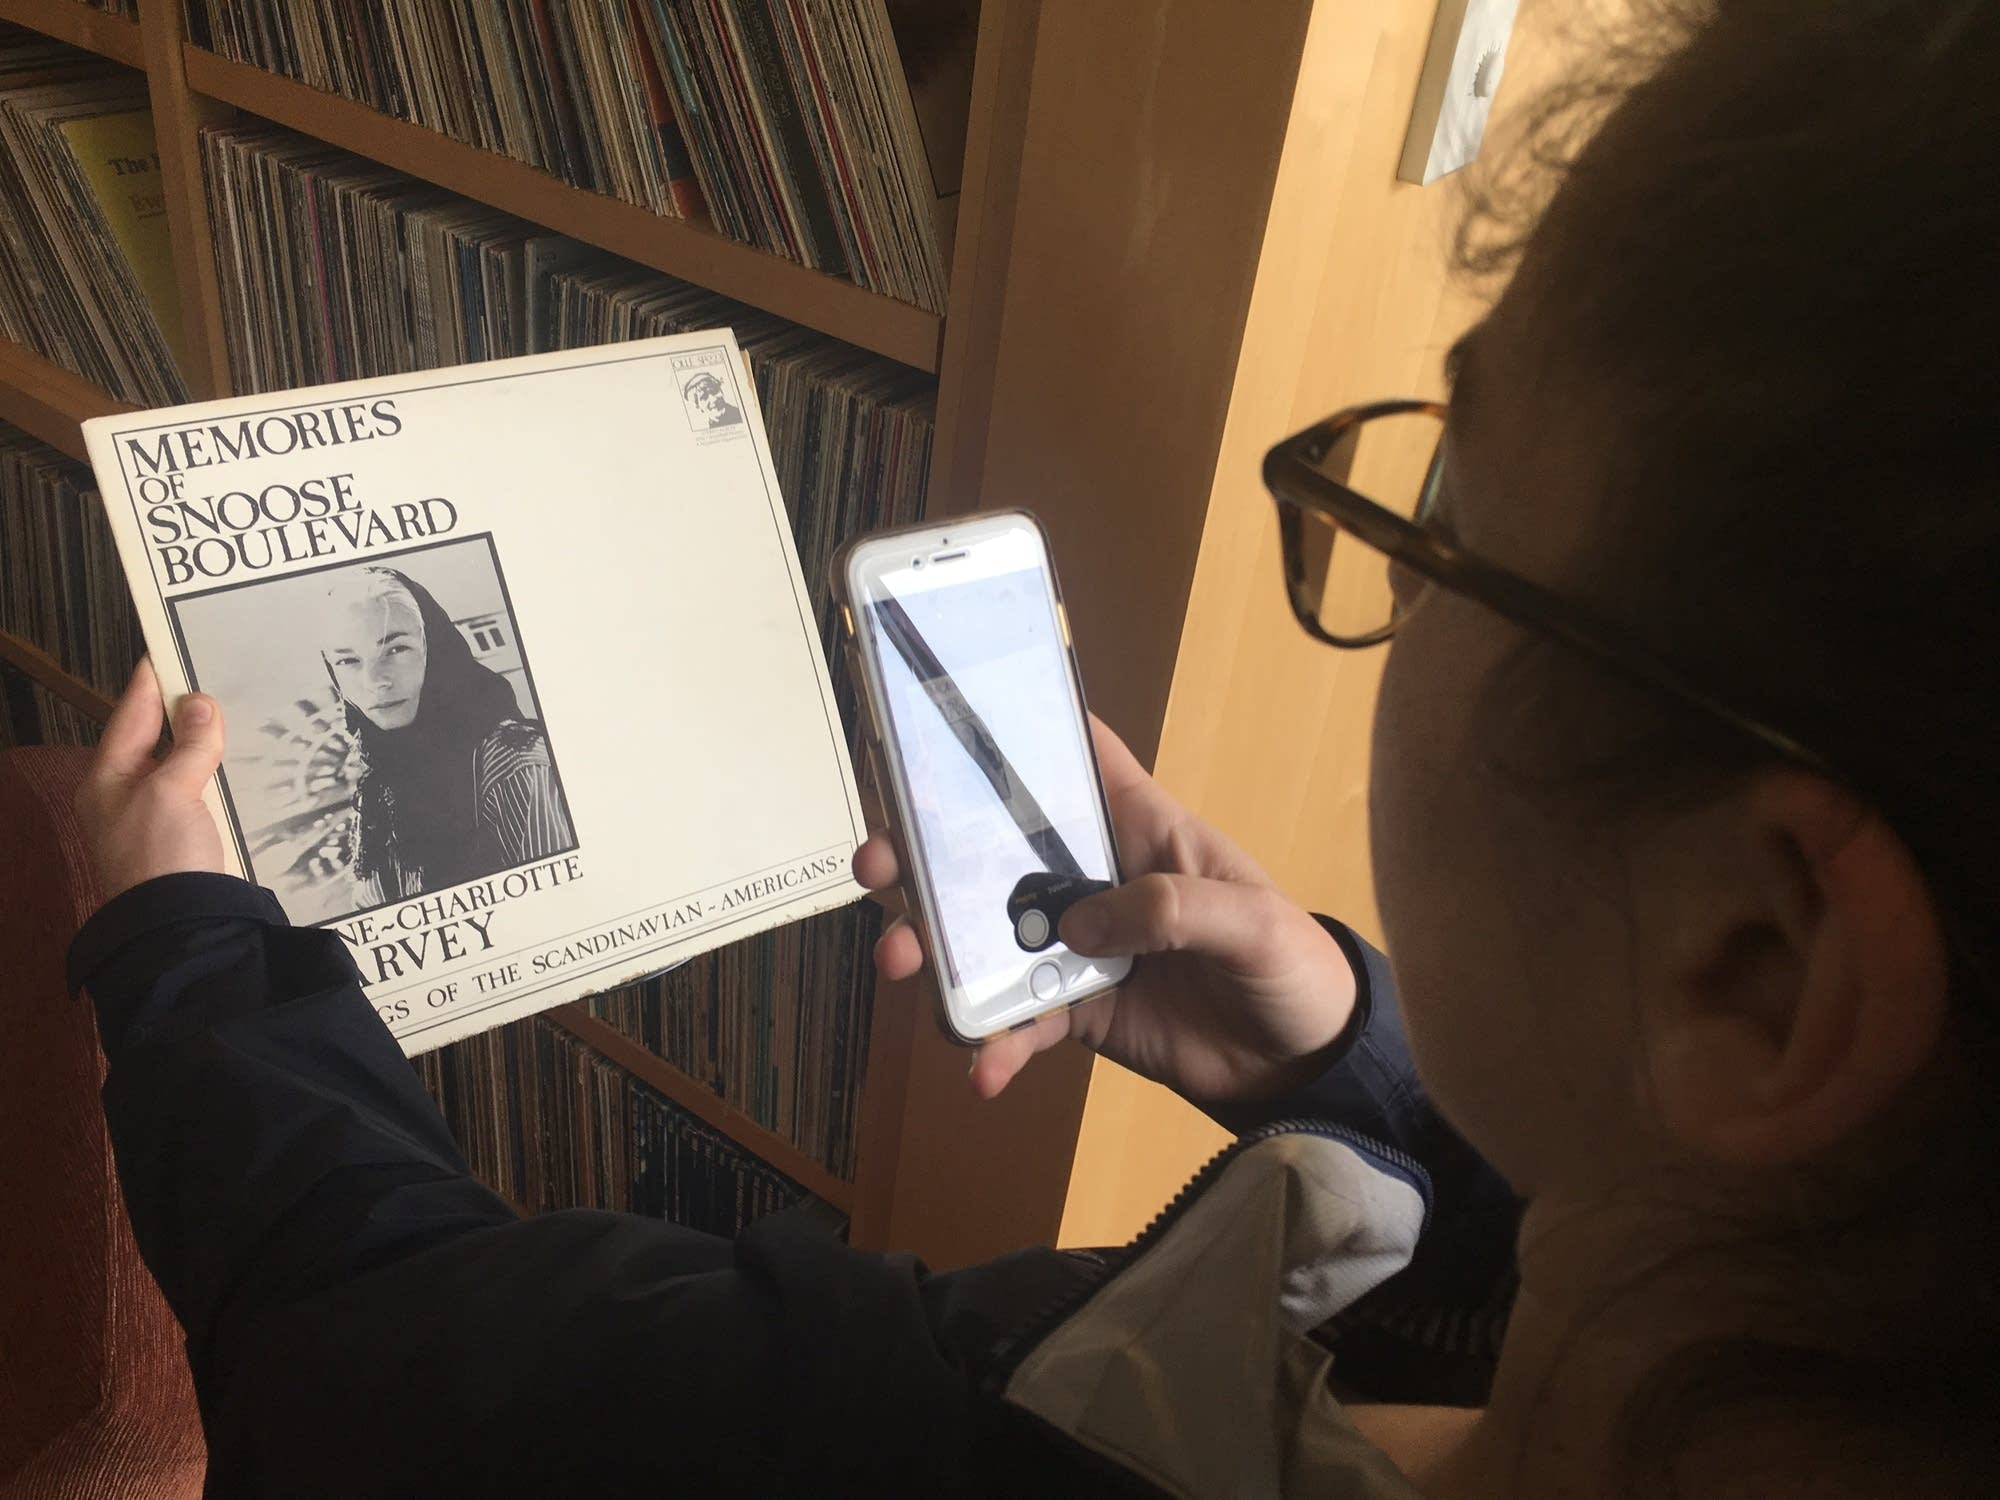 The Current's Jesse Wiza tries to scan her favorite album cover.